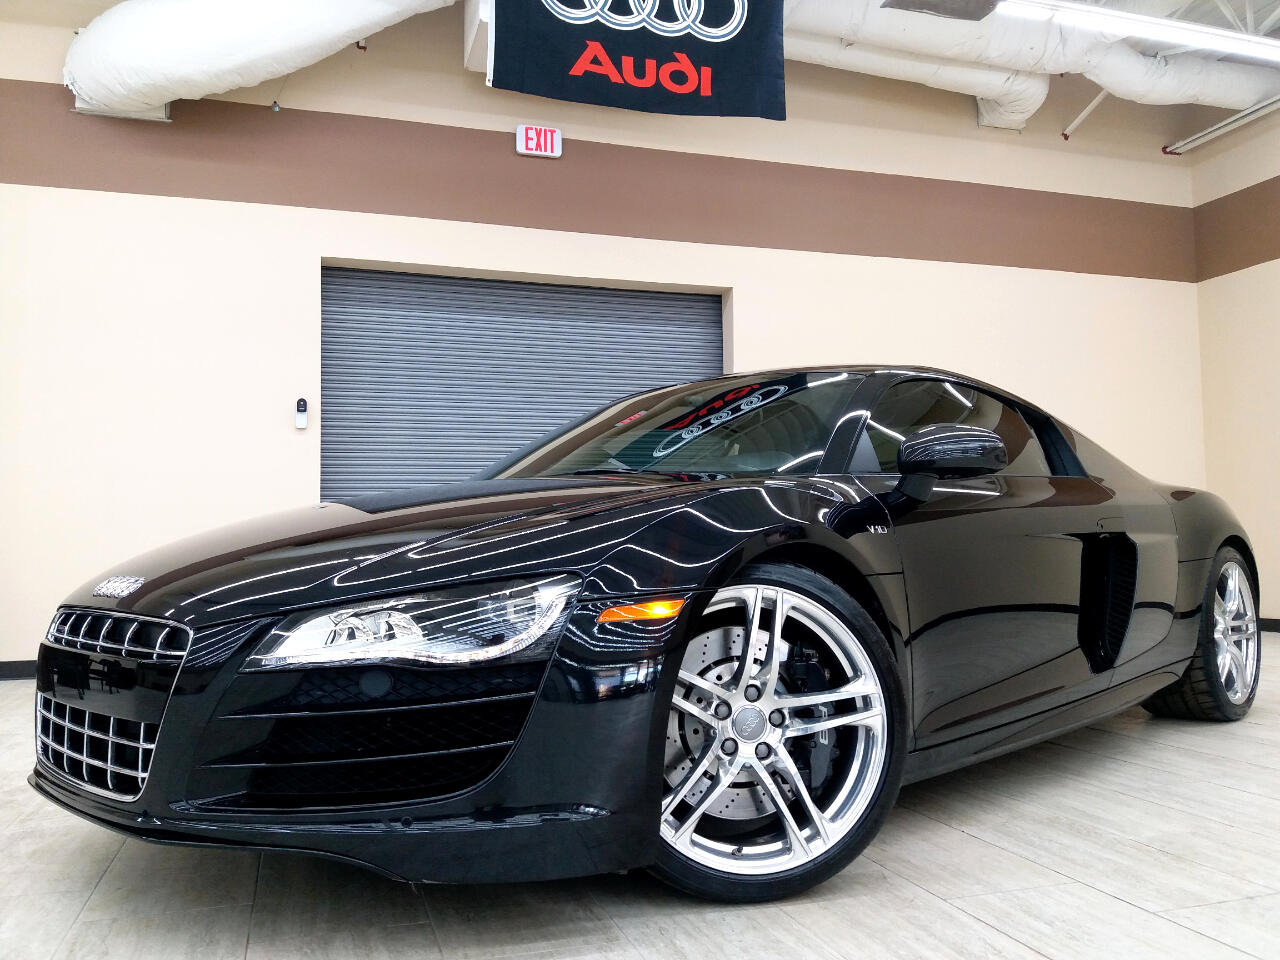 Used Cars Dfw >> Used Cars For Sale Fort Worth Tx 76120 Dfw Auto And Services